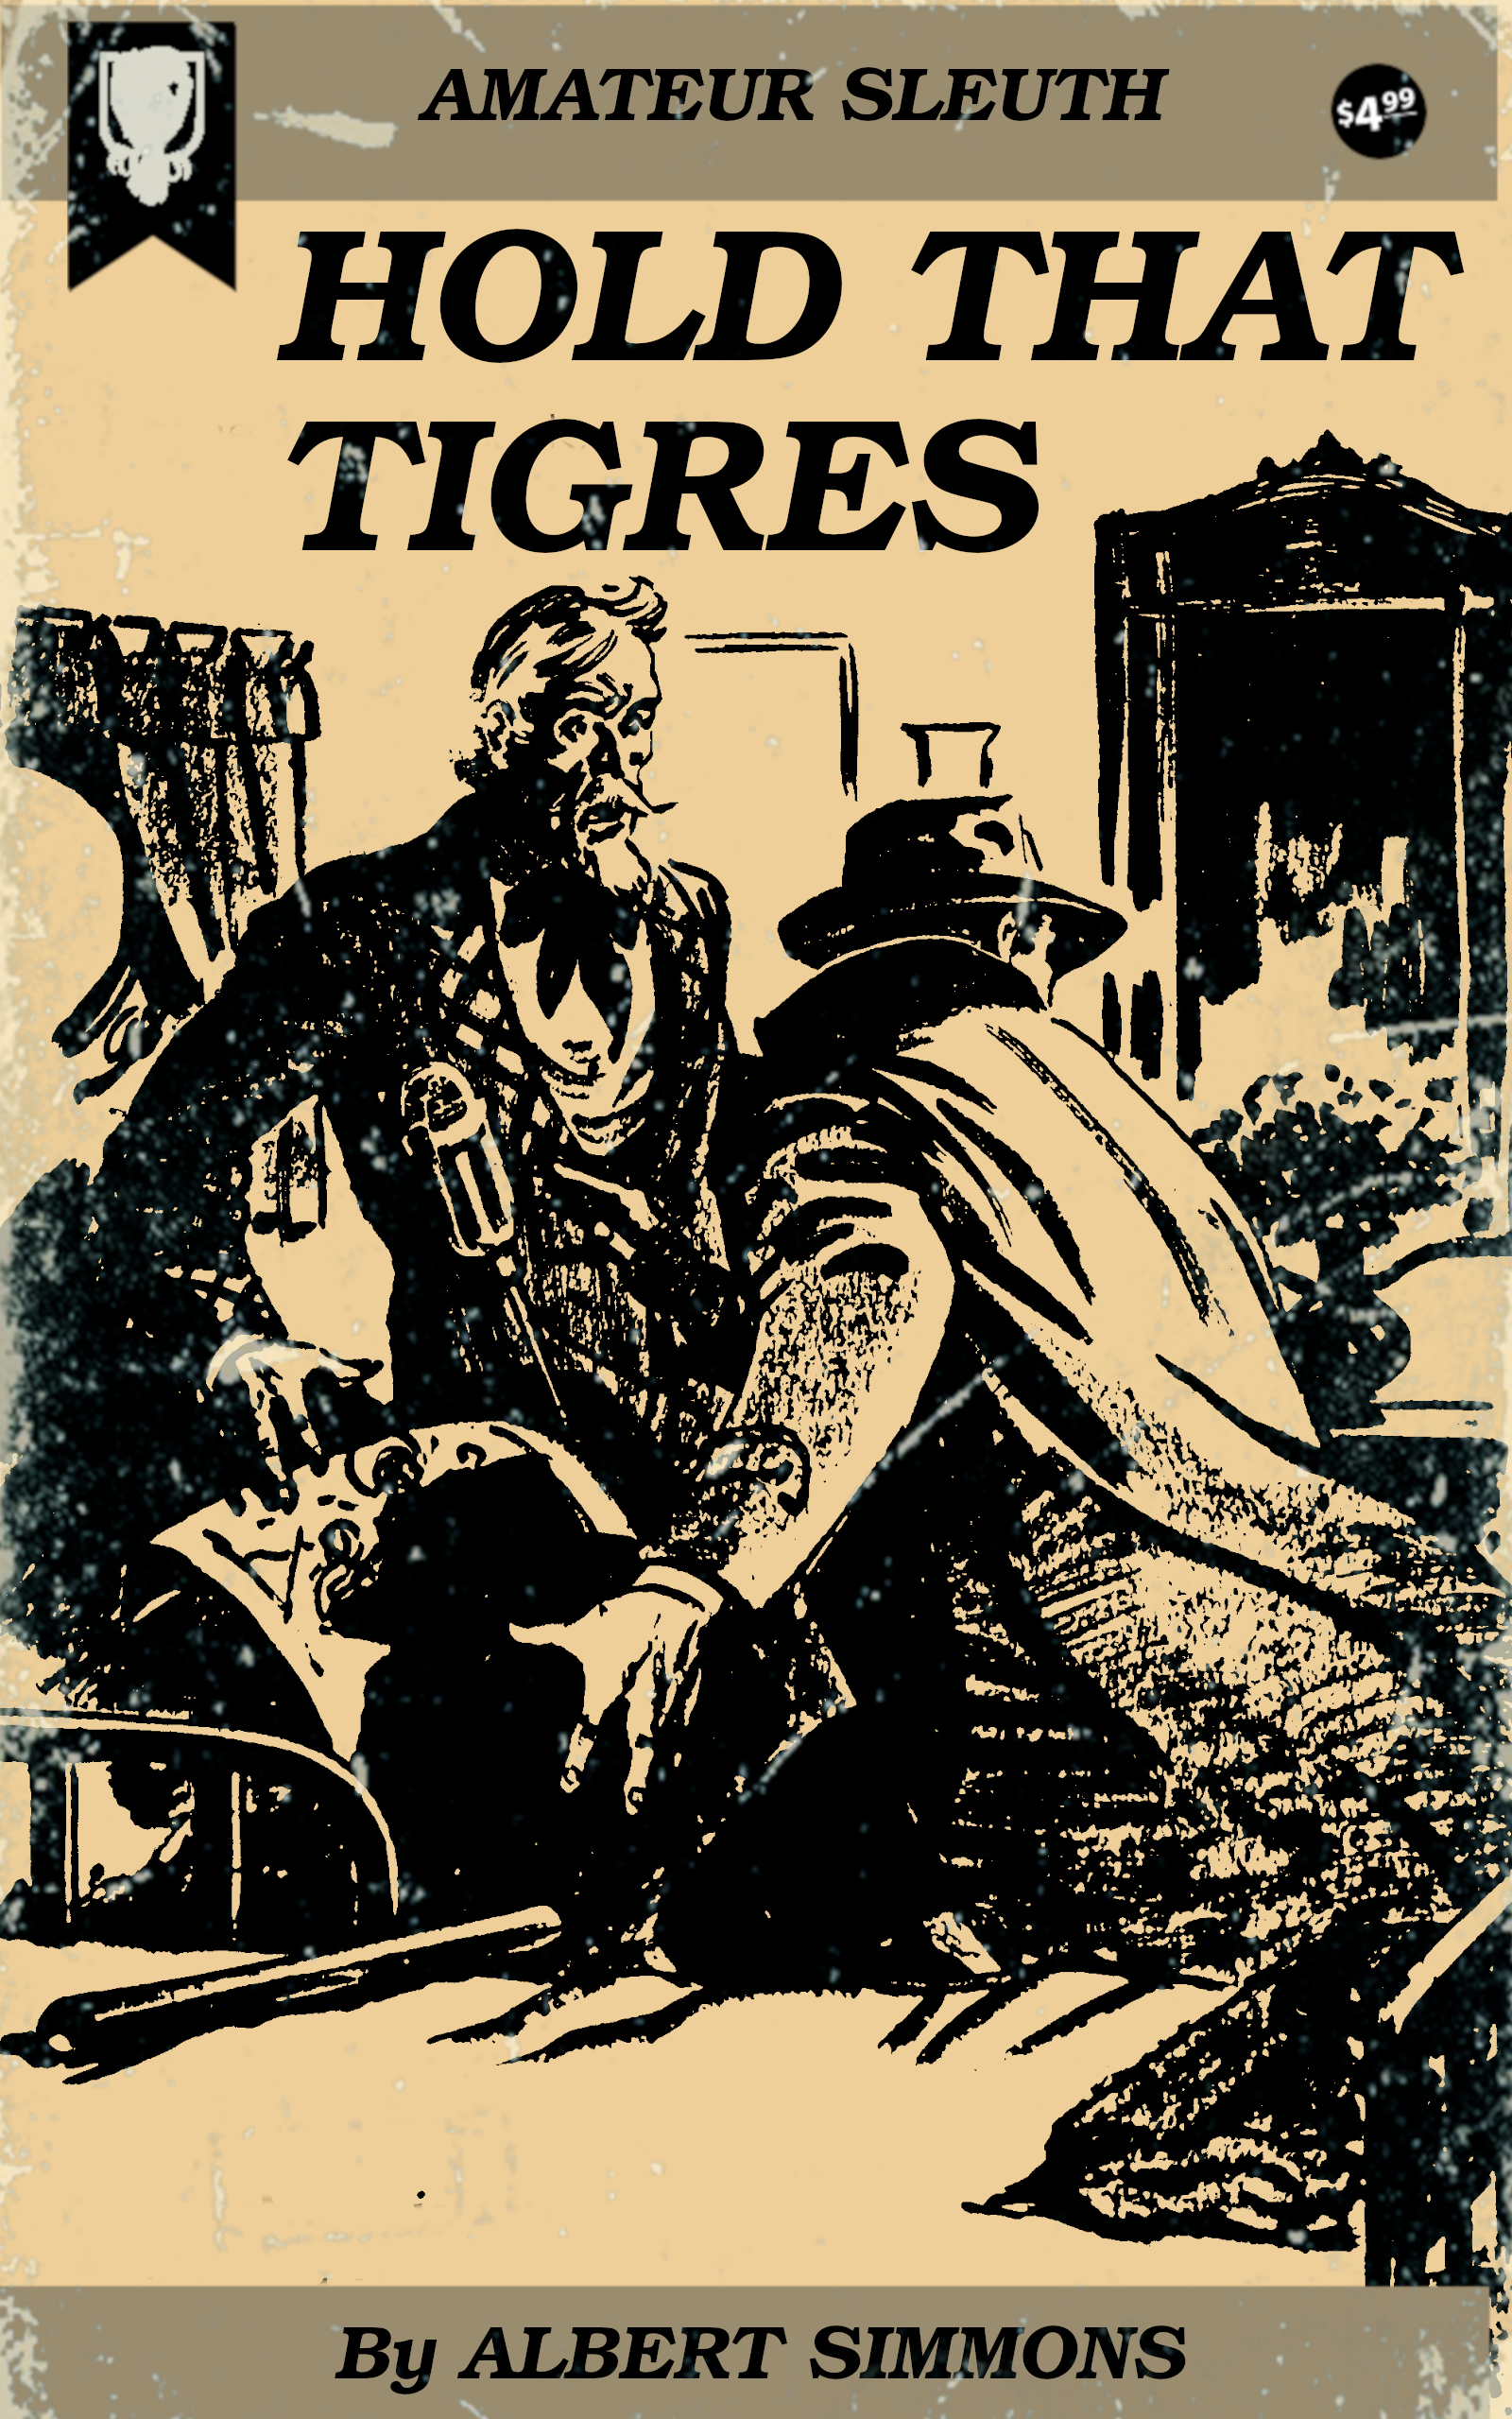 Hold That Tigress by Albert Simmons